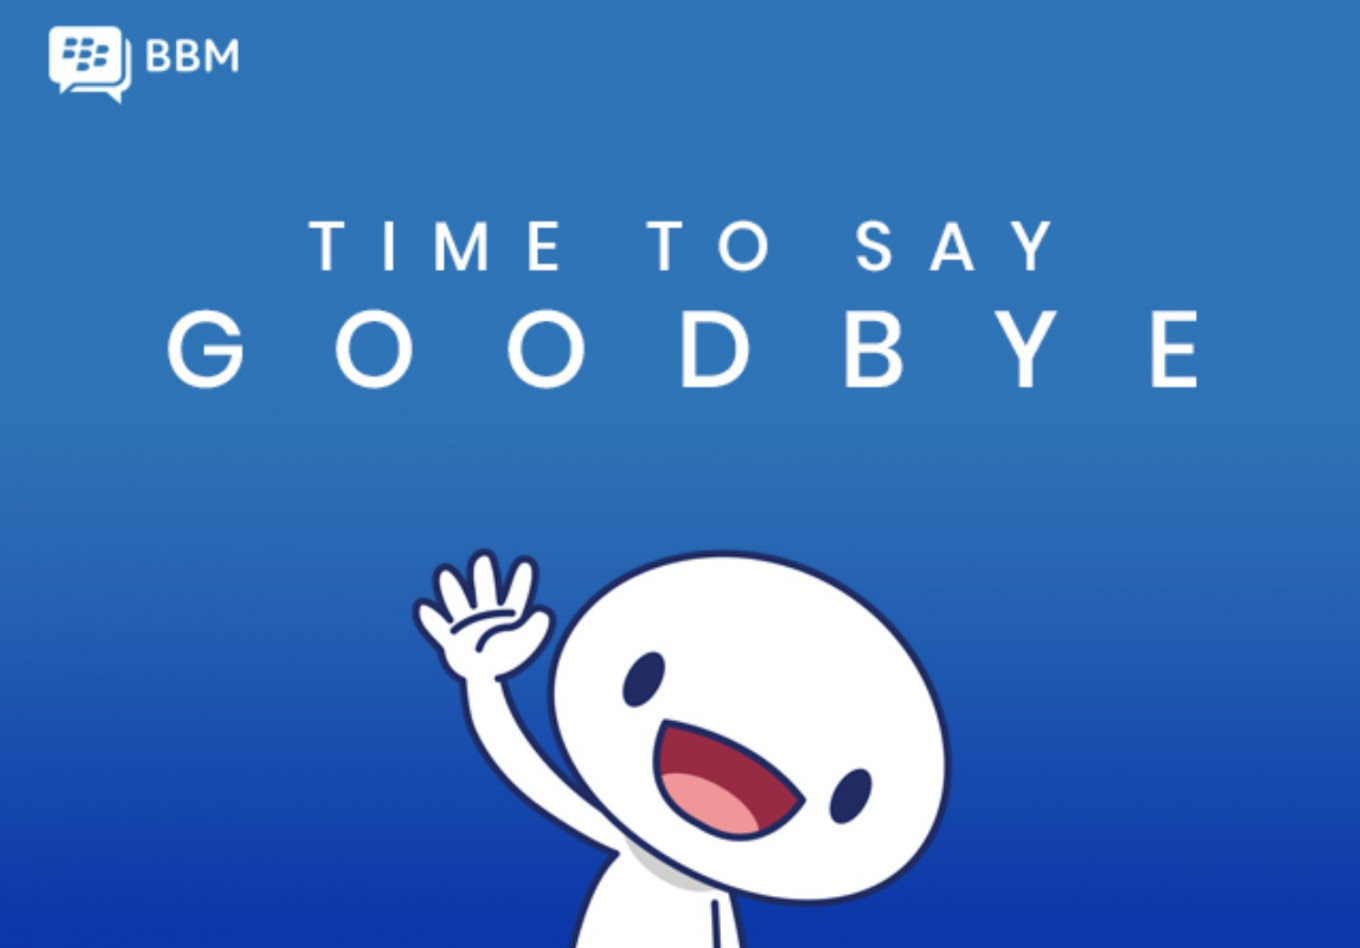 BBM is shutting down for consumers on May 31